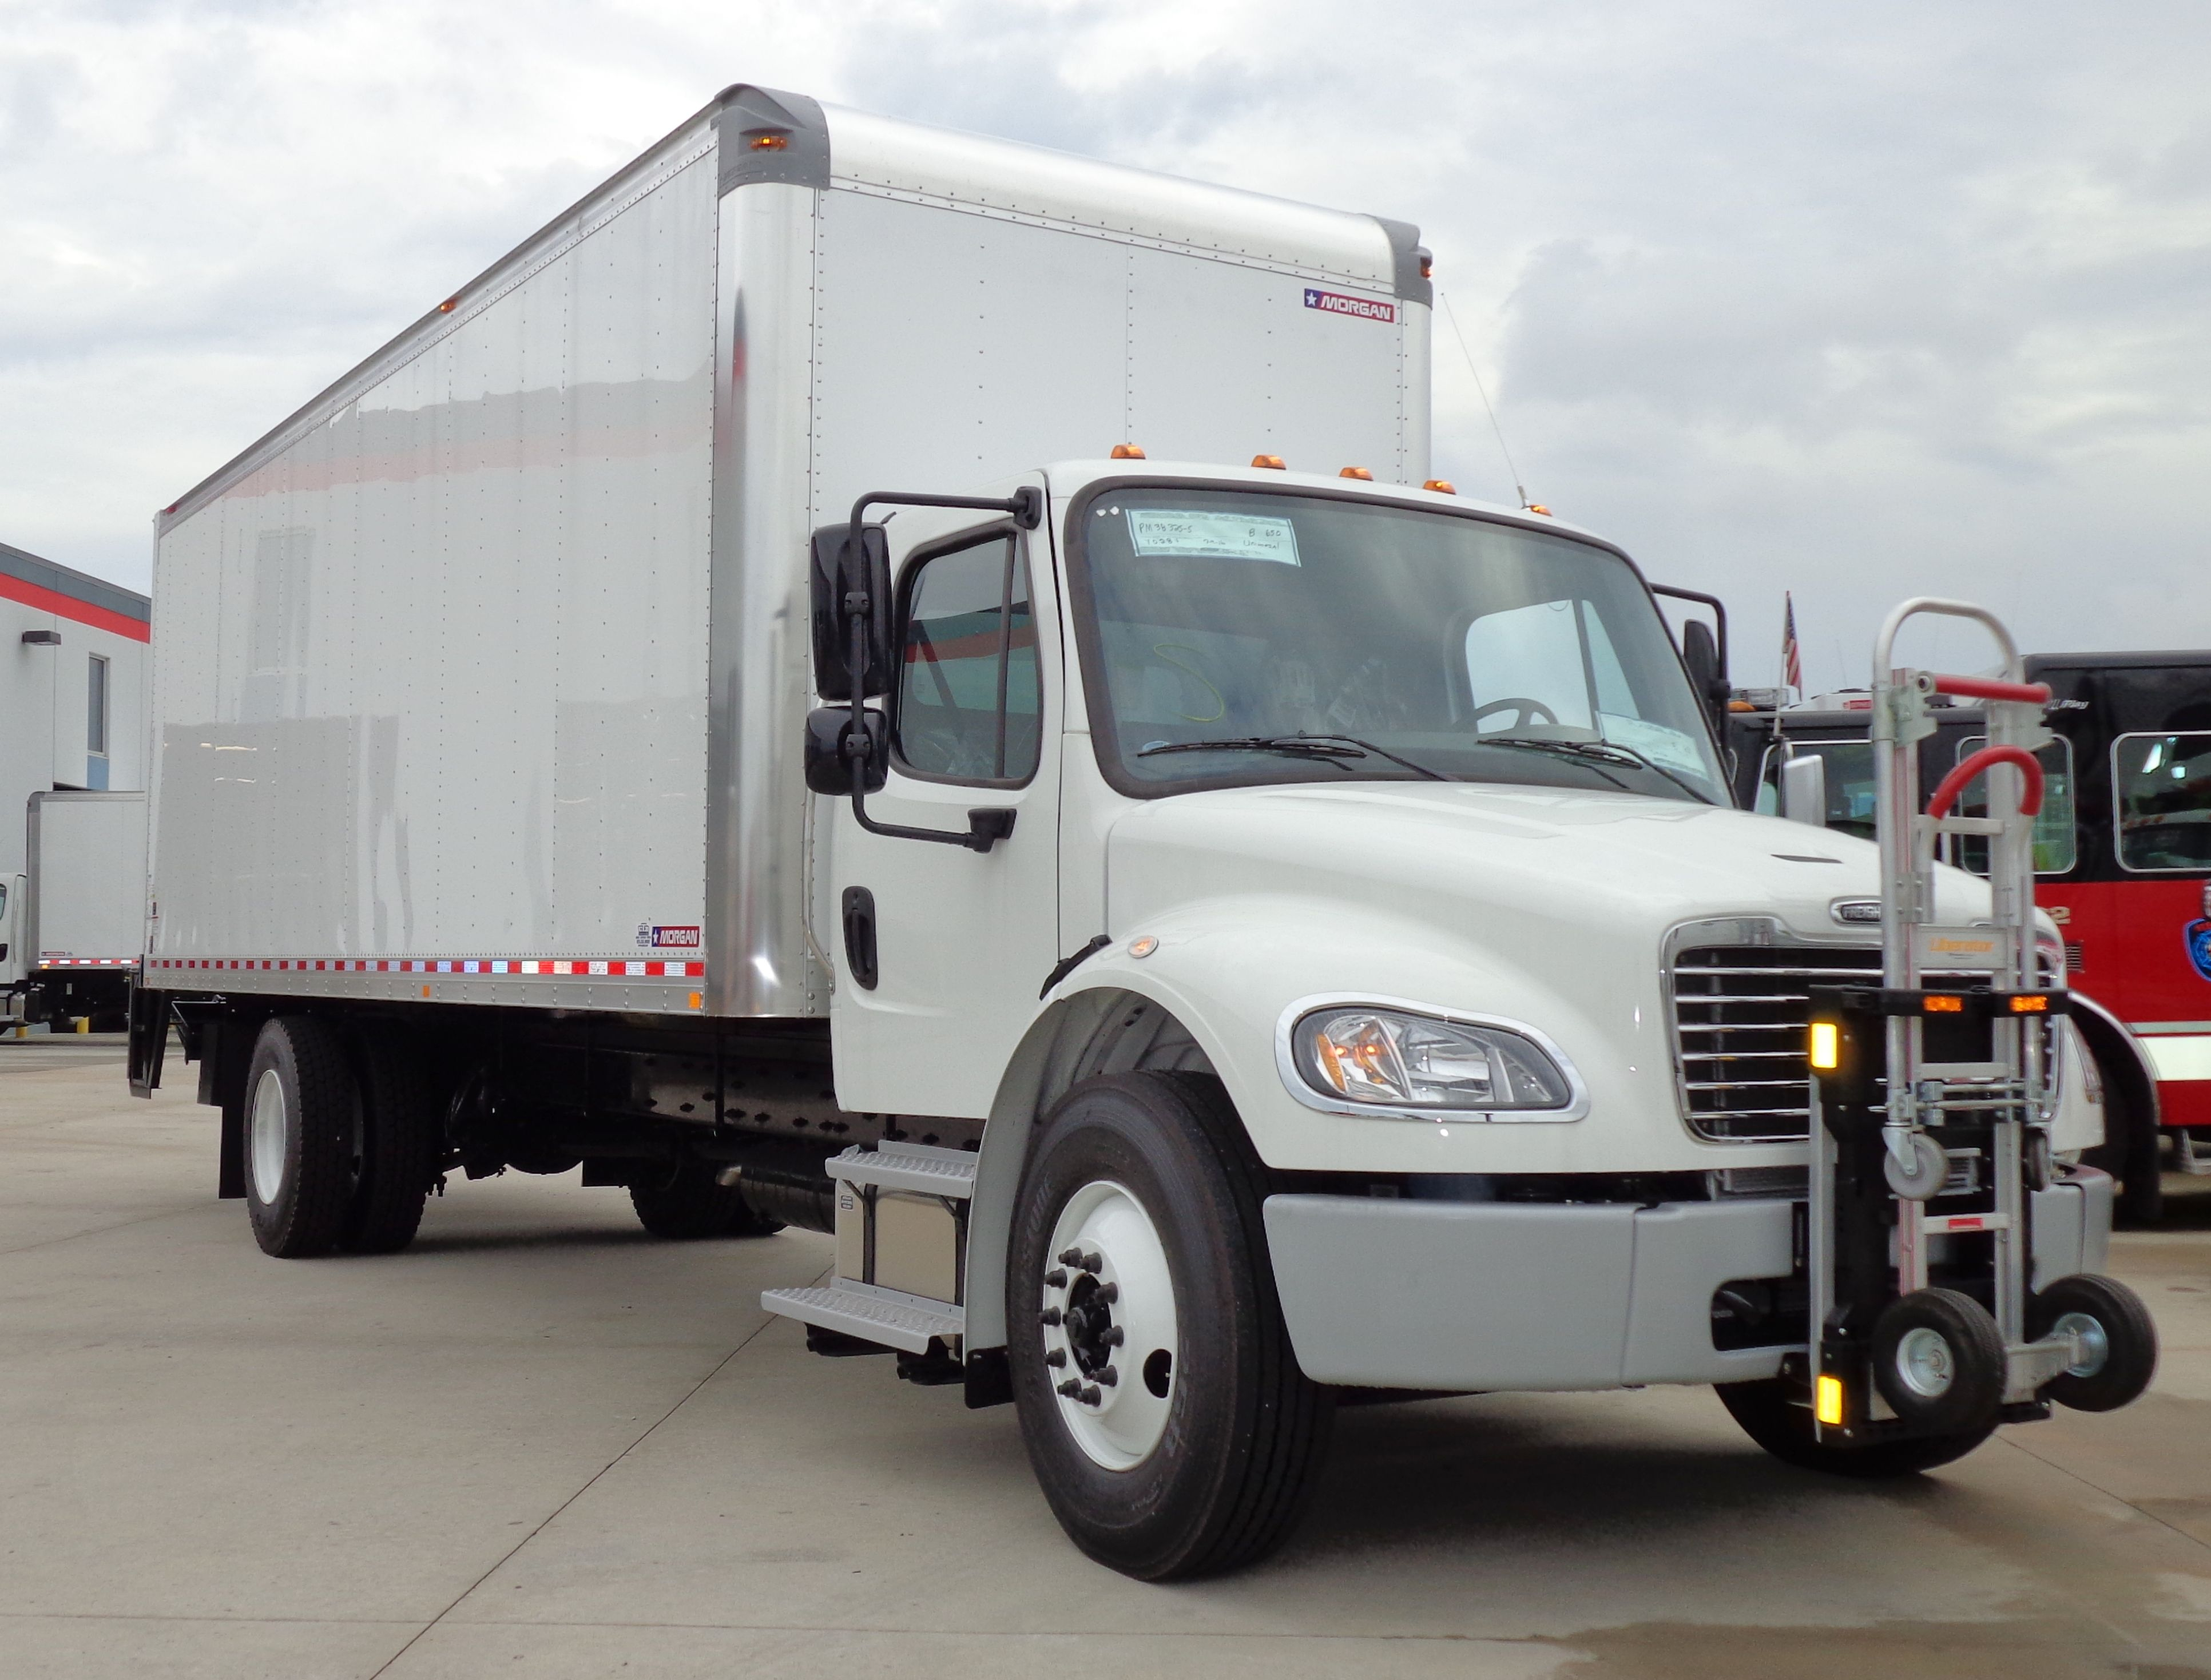 Freightliner M2 Delivery Truck With Morgan Truck Body And Hts